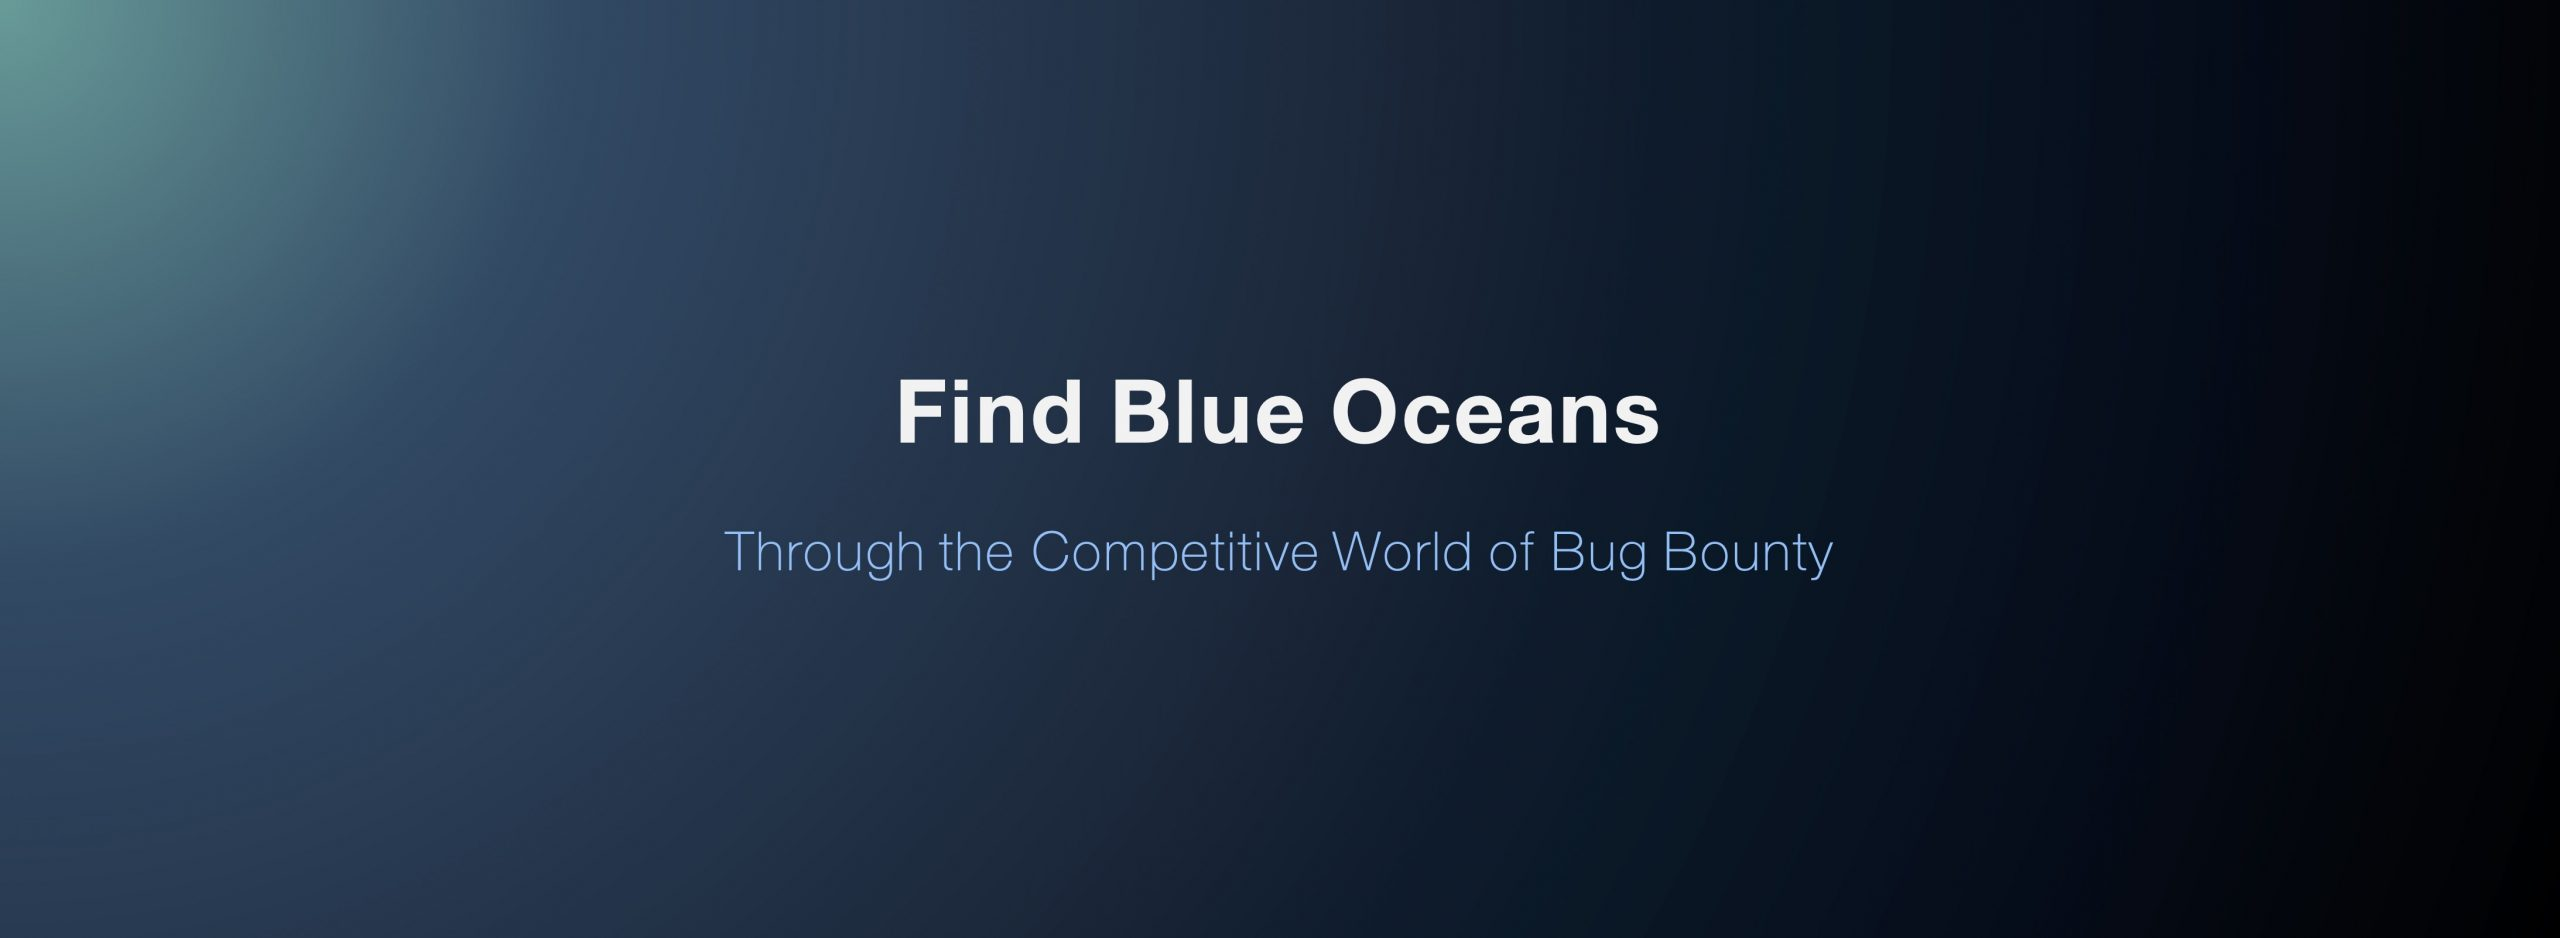 Find blue oceans:Through the Competitive World of Bug Bounty